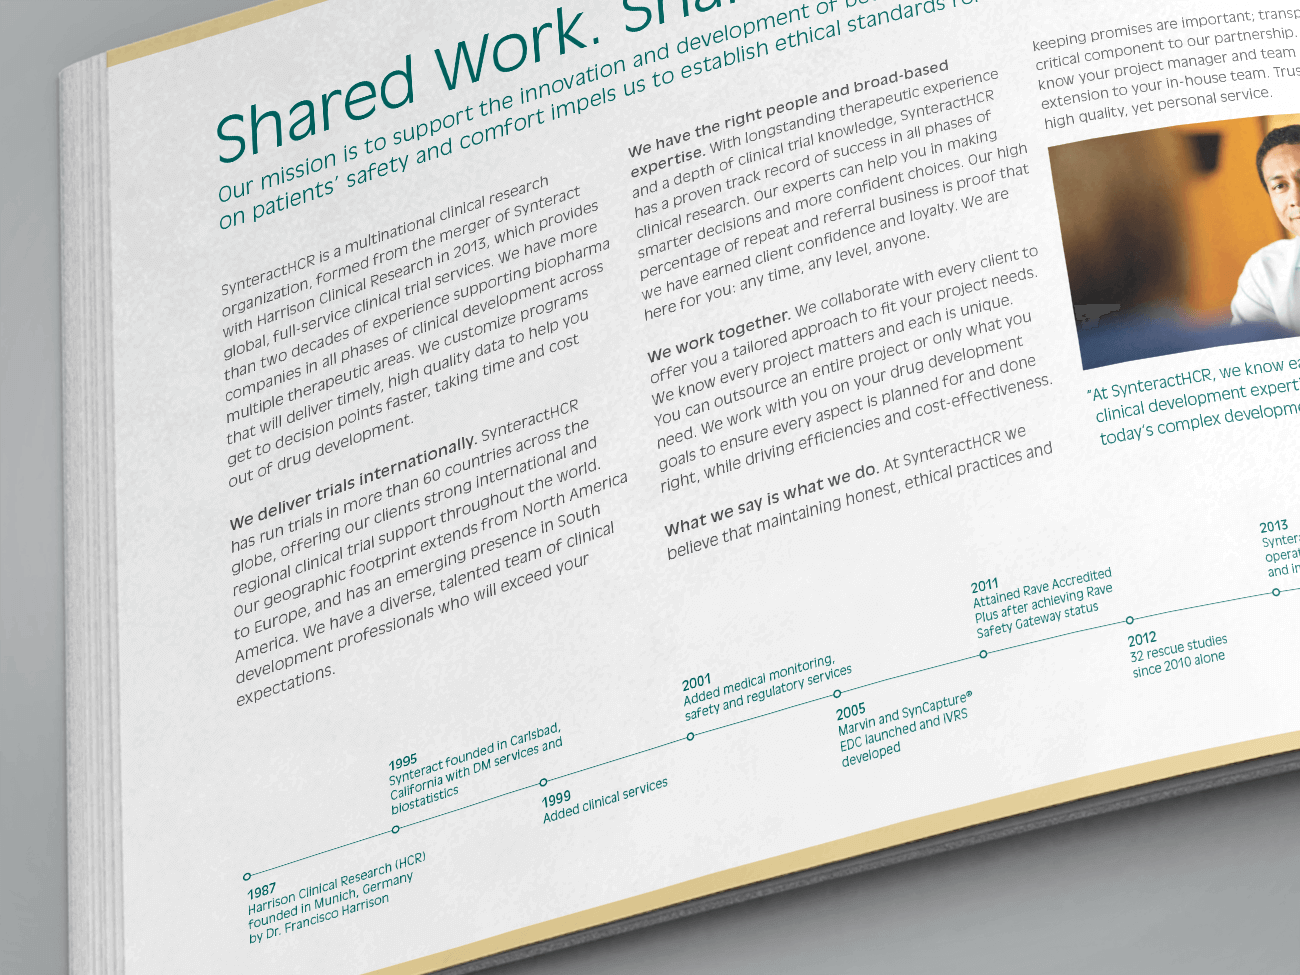 SynteractHCR-Corporate-Brochure-Mockup-Close-Up